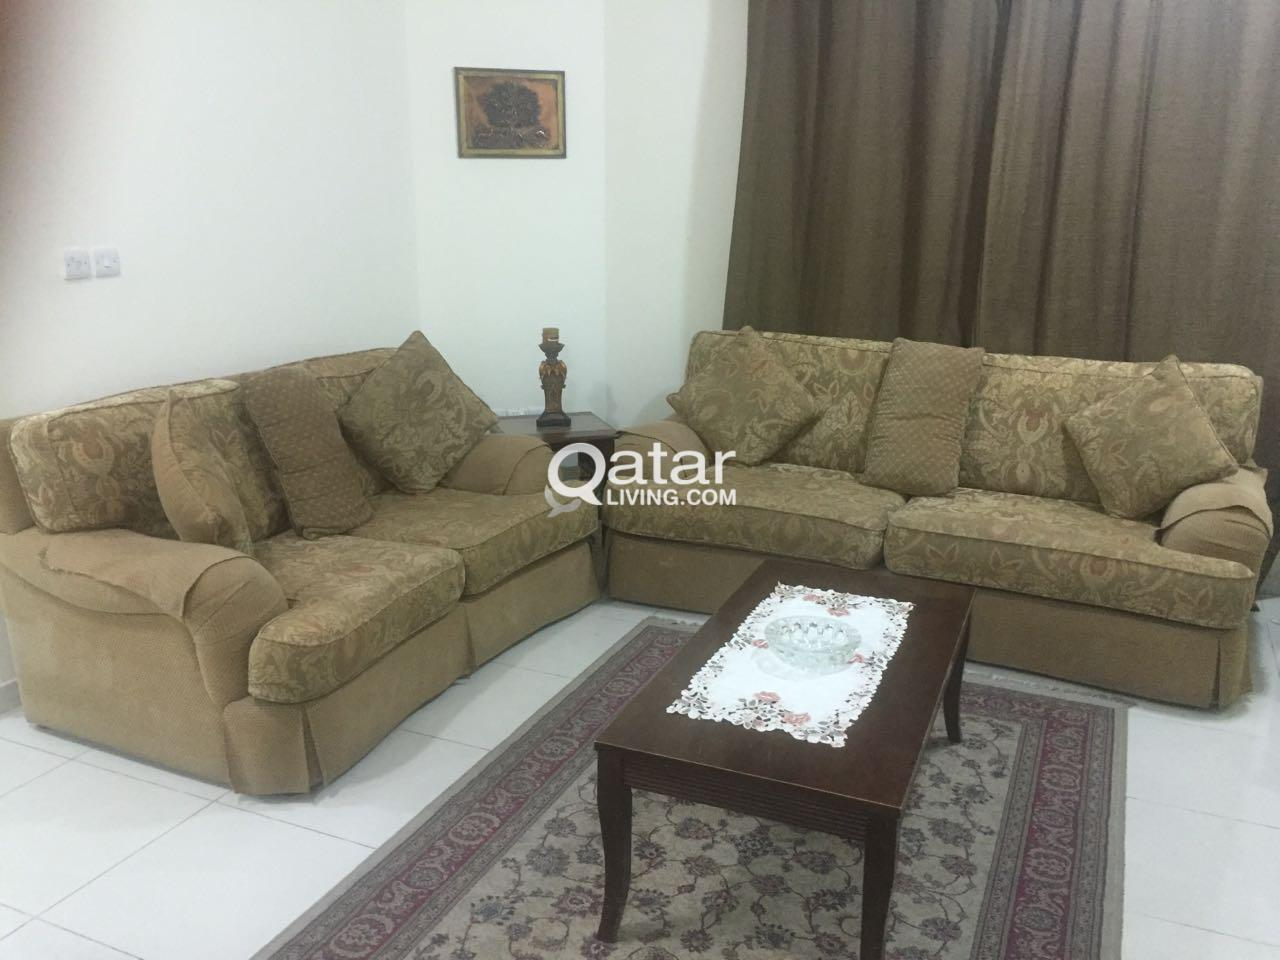 good sofa sets tampa futon bed by factory outlet 7 seater set in very condition for sale qatar